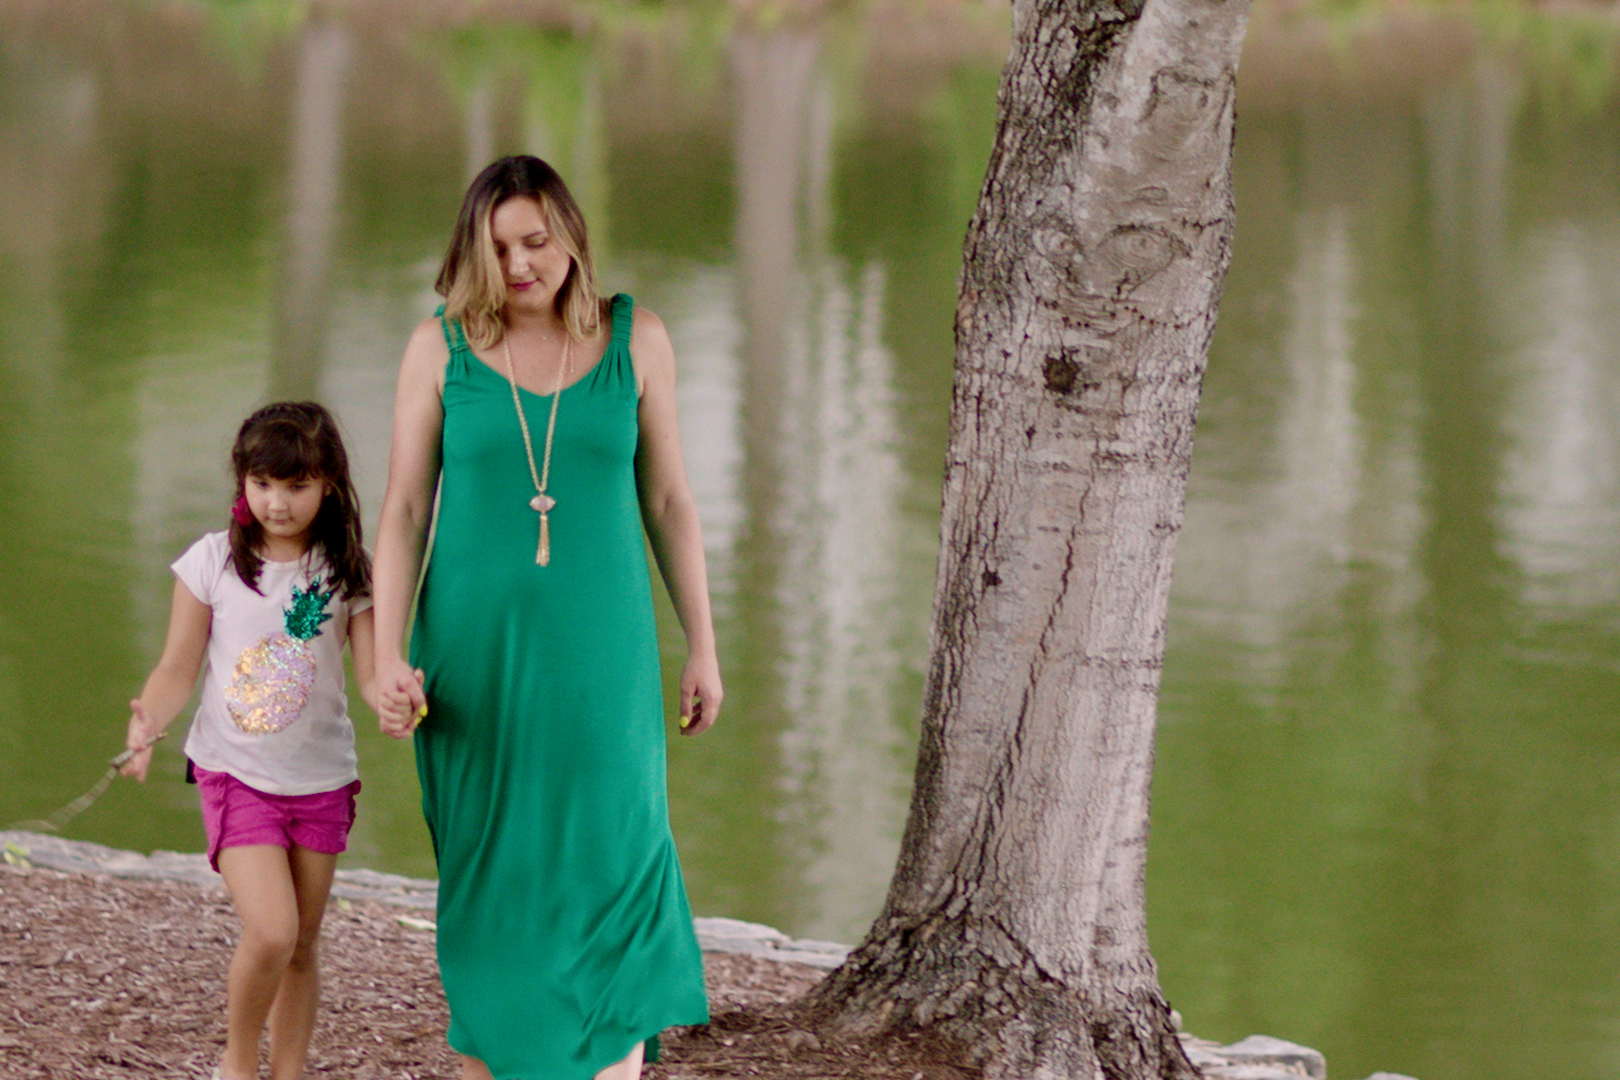 Woman holding child's hand as they walk alongside a lake